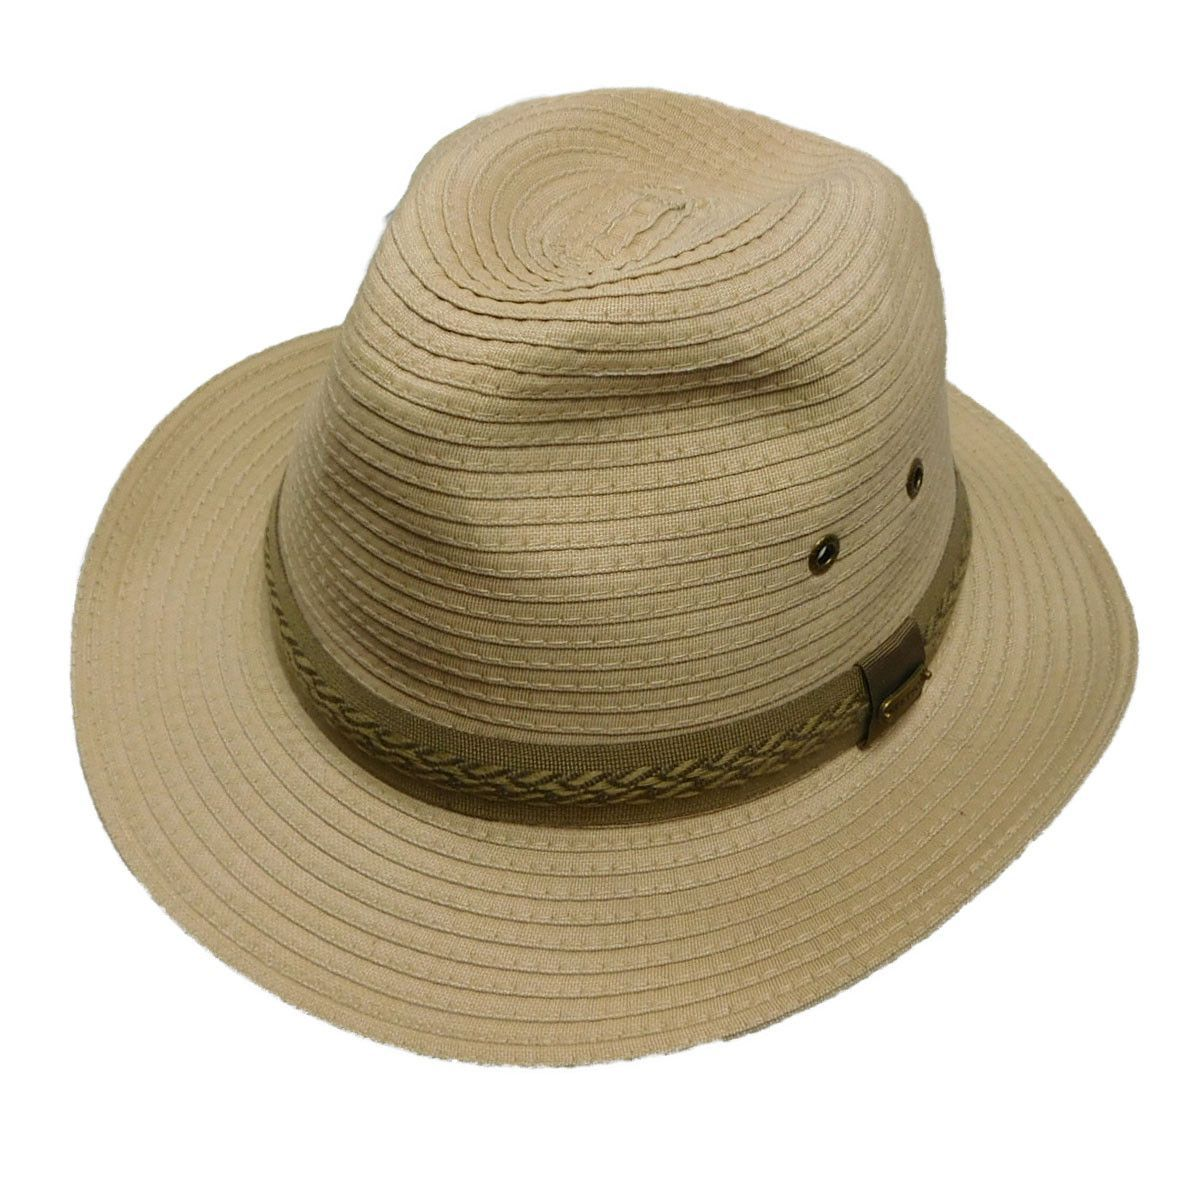 Stetson Traveler Great hat. UPF50+. Packable! 27acd7f3dcc